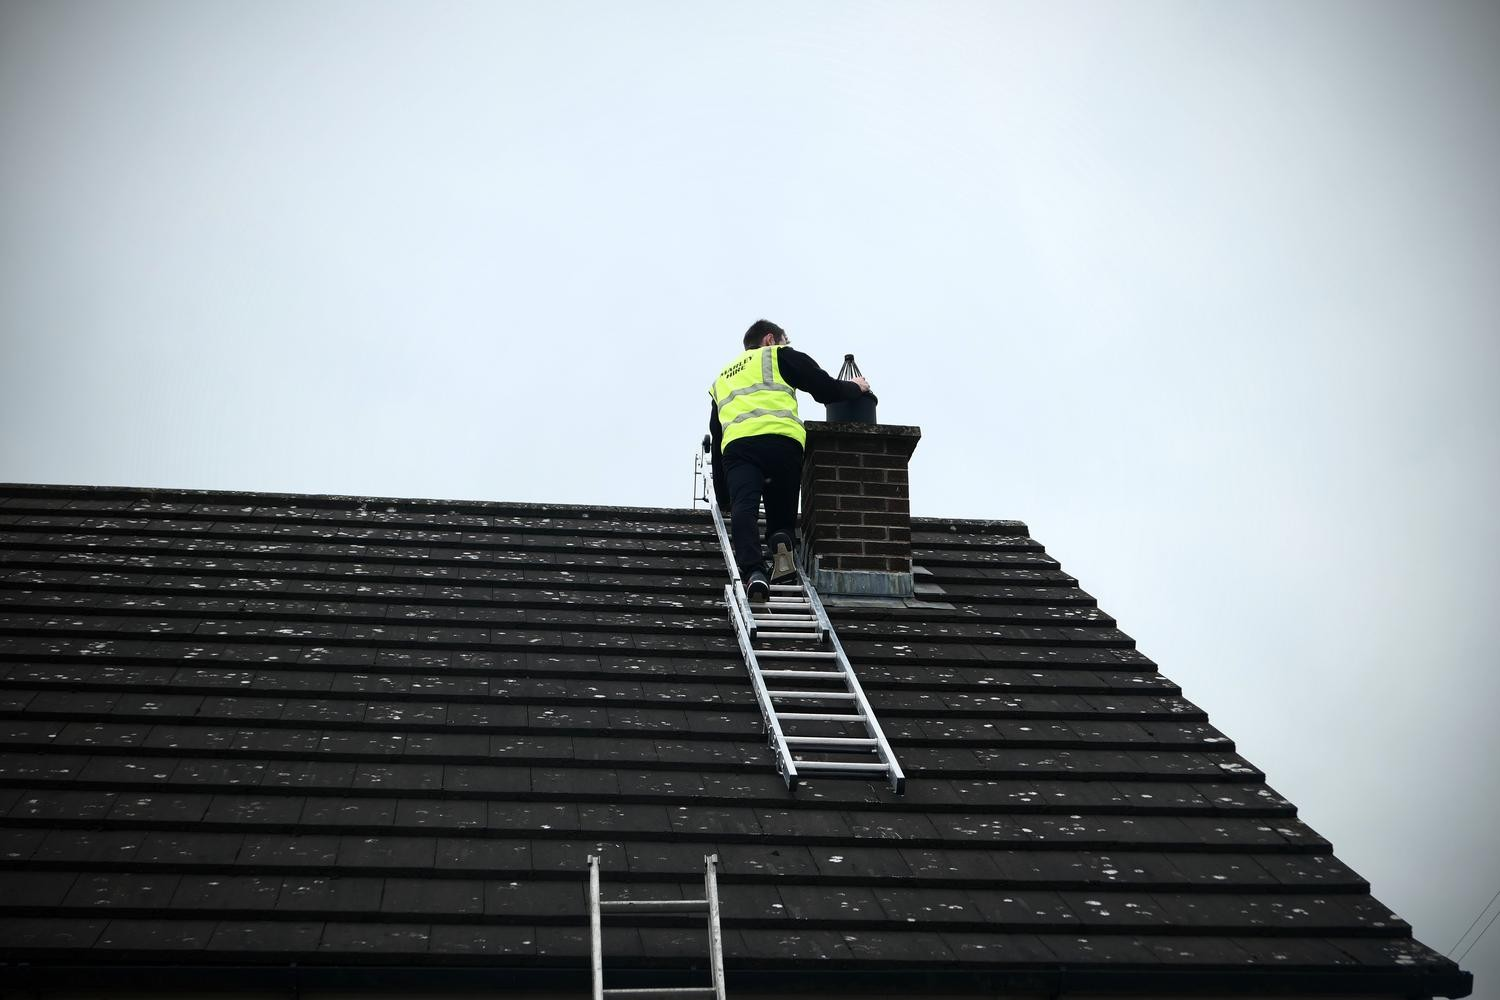 Roof Ladder Hire Northern Ireland Marley Hire